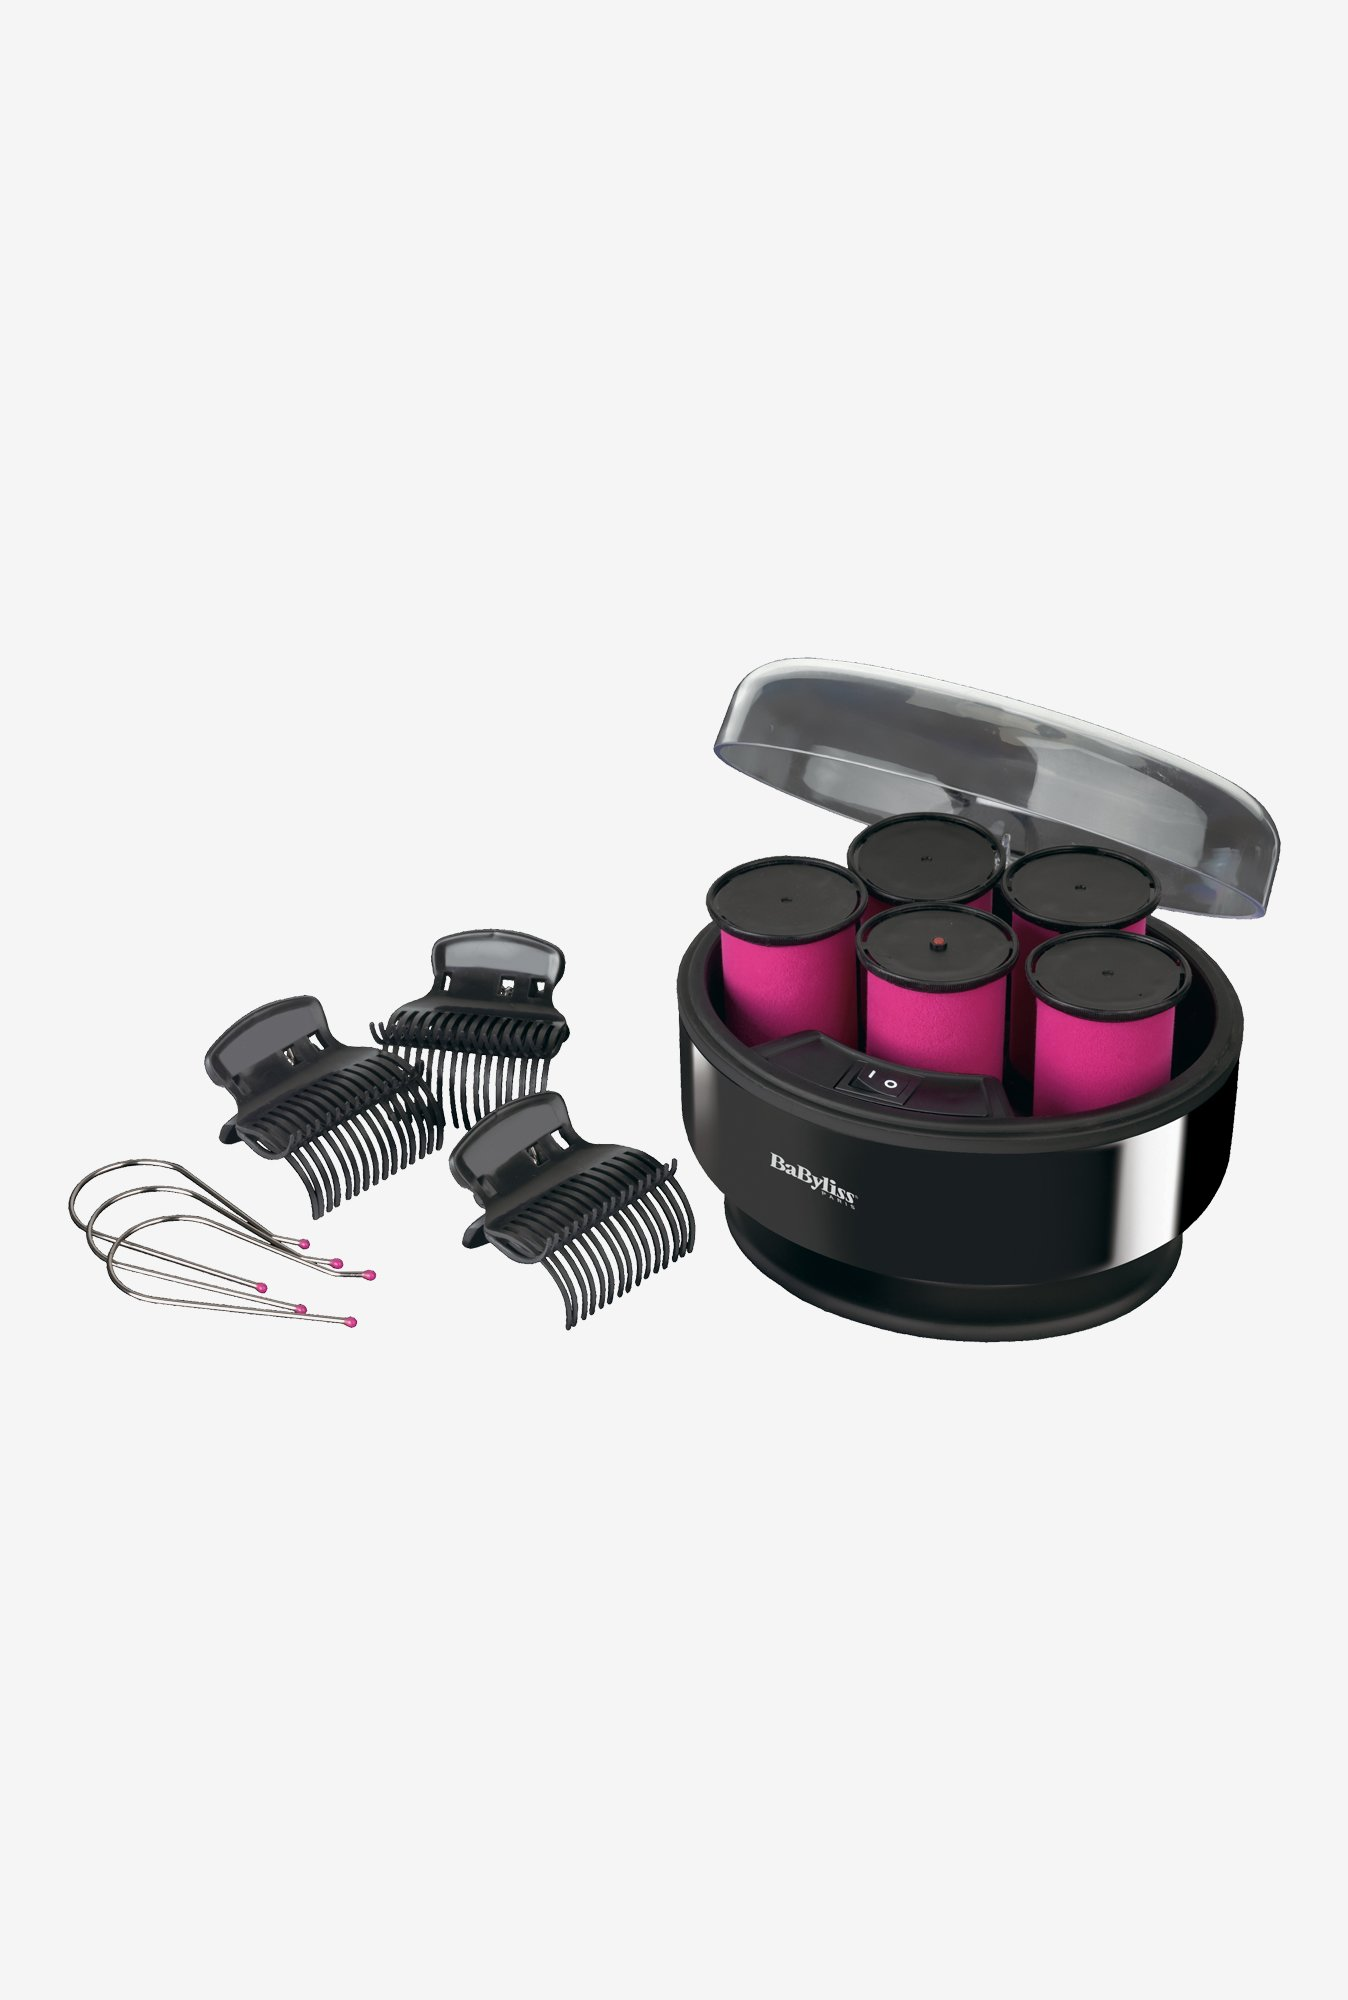 Babyliss 3038E Heated Rollers Set Black